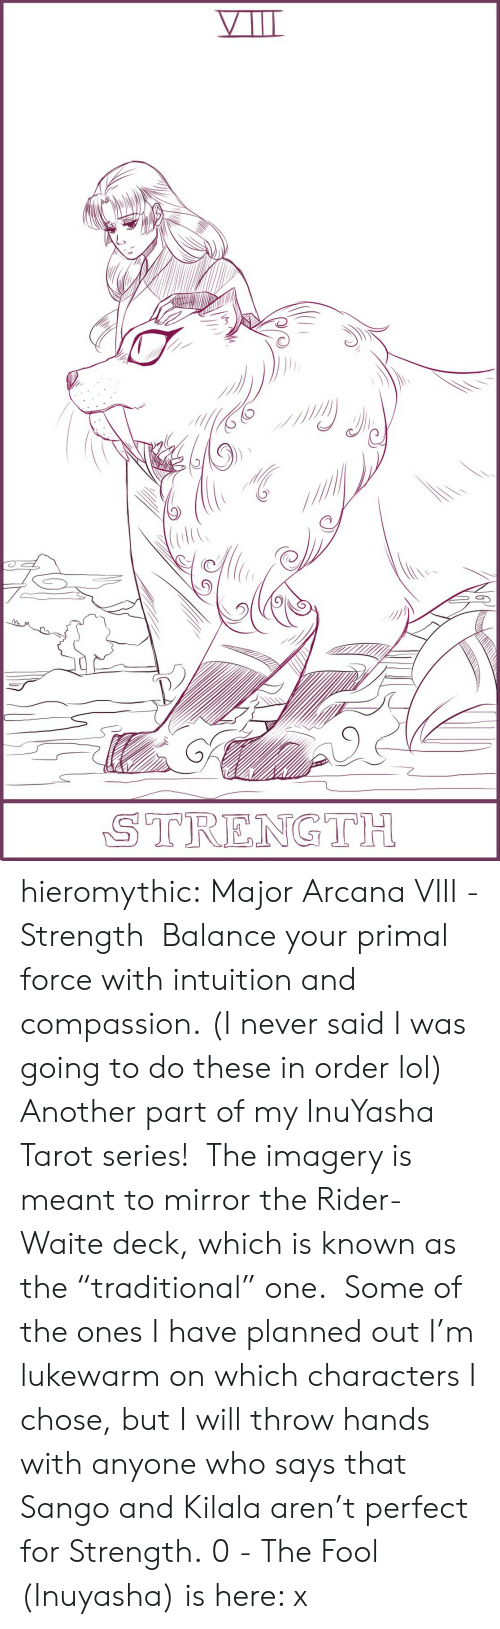 """Lol, Target, and Tumblr: STRENGTH hieromythic:   Major Arcana VIII - Strength Balance your primal force with intuition and compassion. (I never said I was going to do these in order lol) Another part of my InuYasha Tarot series! The imagery is meant to mirror the Rider-Waite deck, which is known as the """"traditional"""" one. Some of the ones I have planned out I'm lukewarm on which characters I chose, but I will throw hands with anyone who says that Sango and Kilala aren't perfect for Strength. 0 - The Fool (Inuyasha) is here: x"""